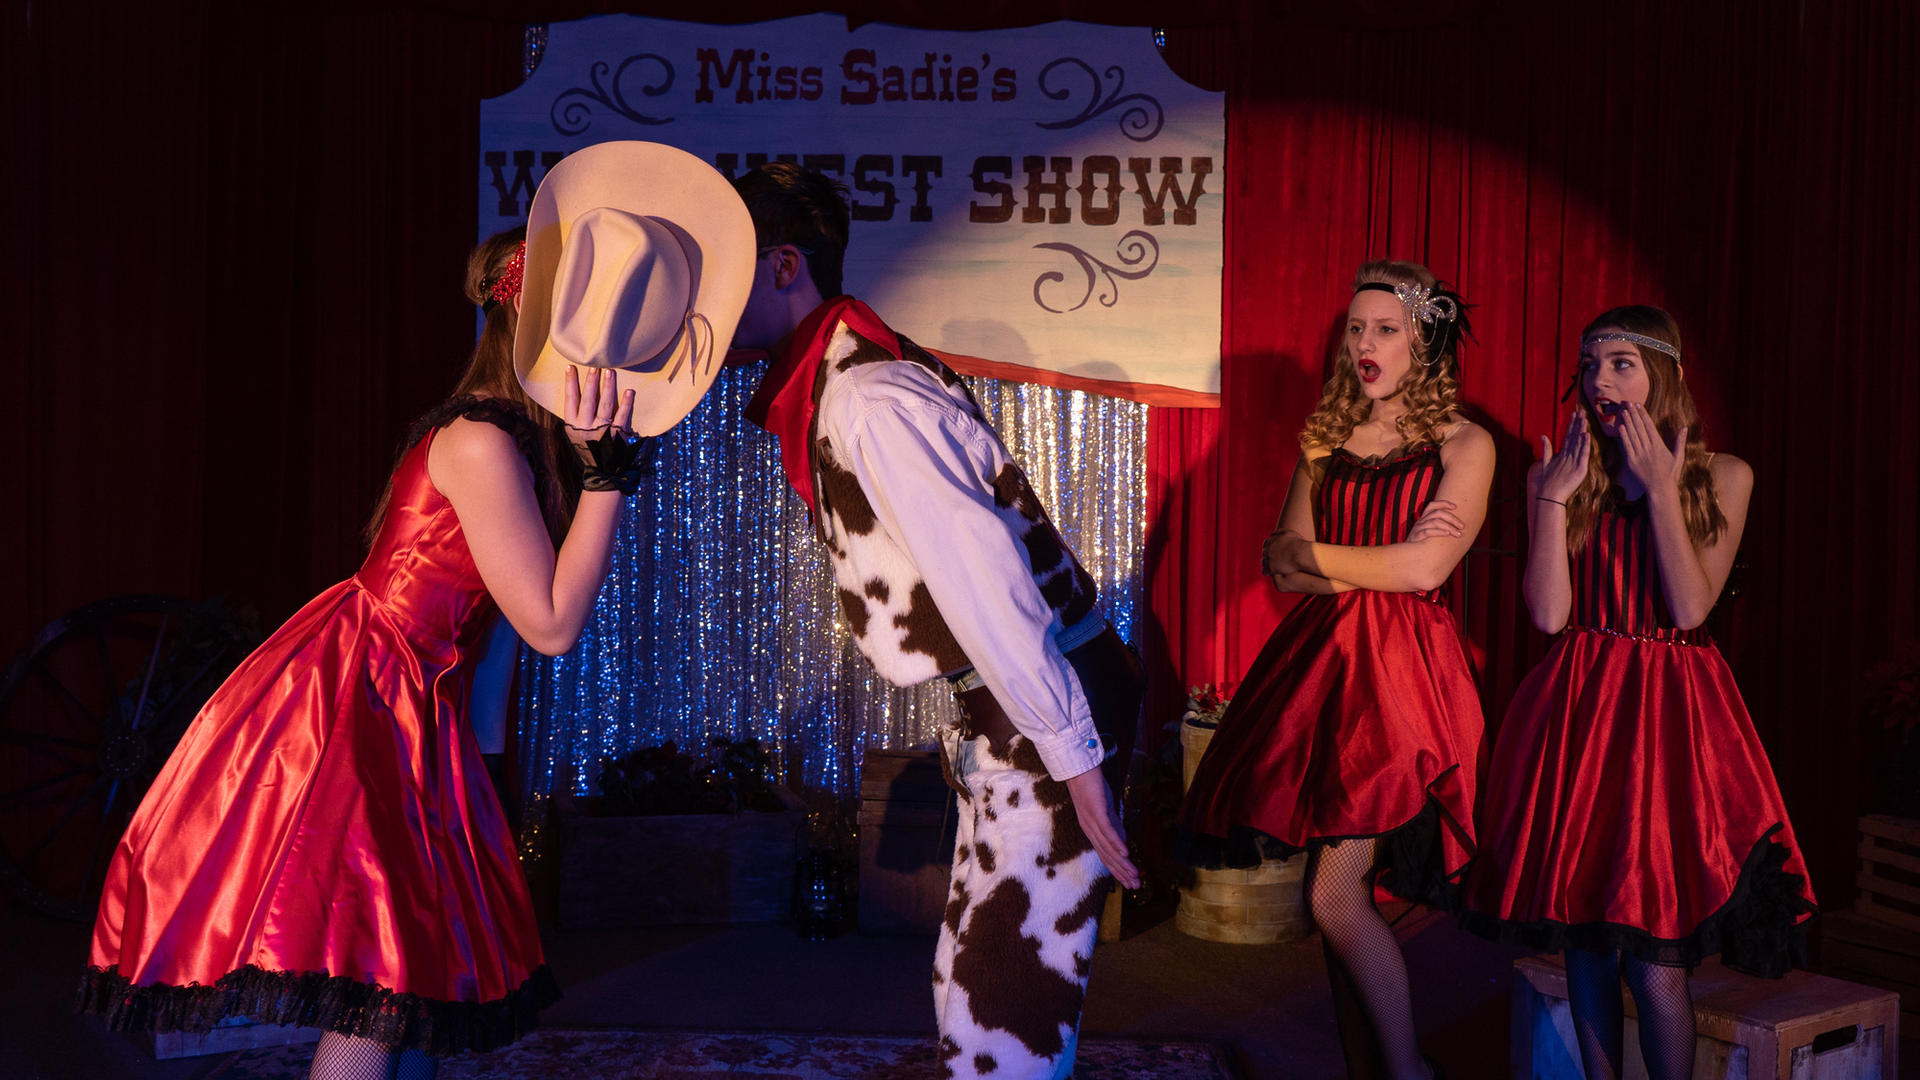 Miss Sadies Wild West Show